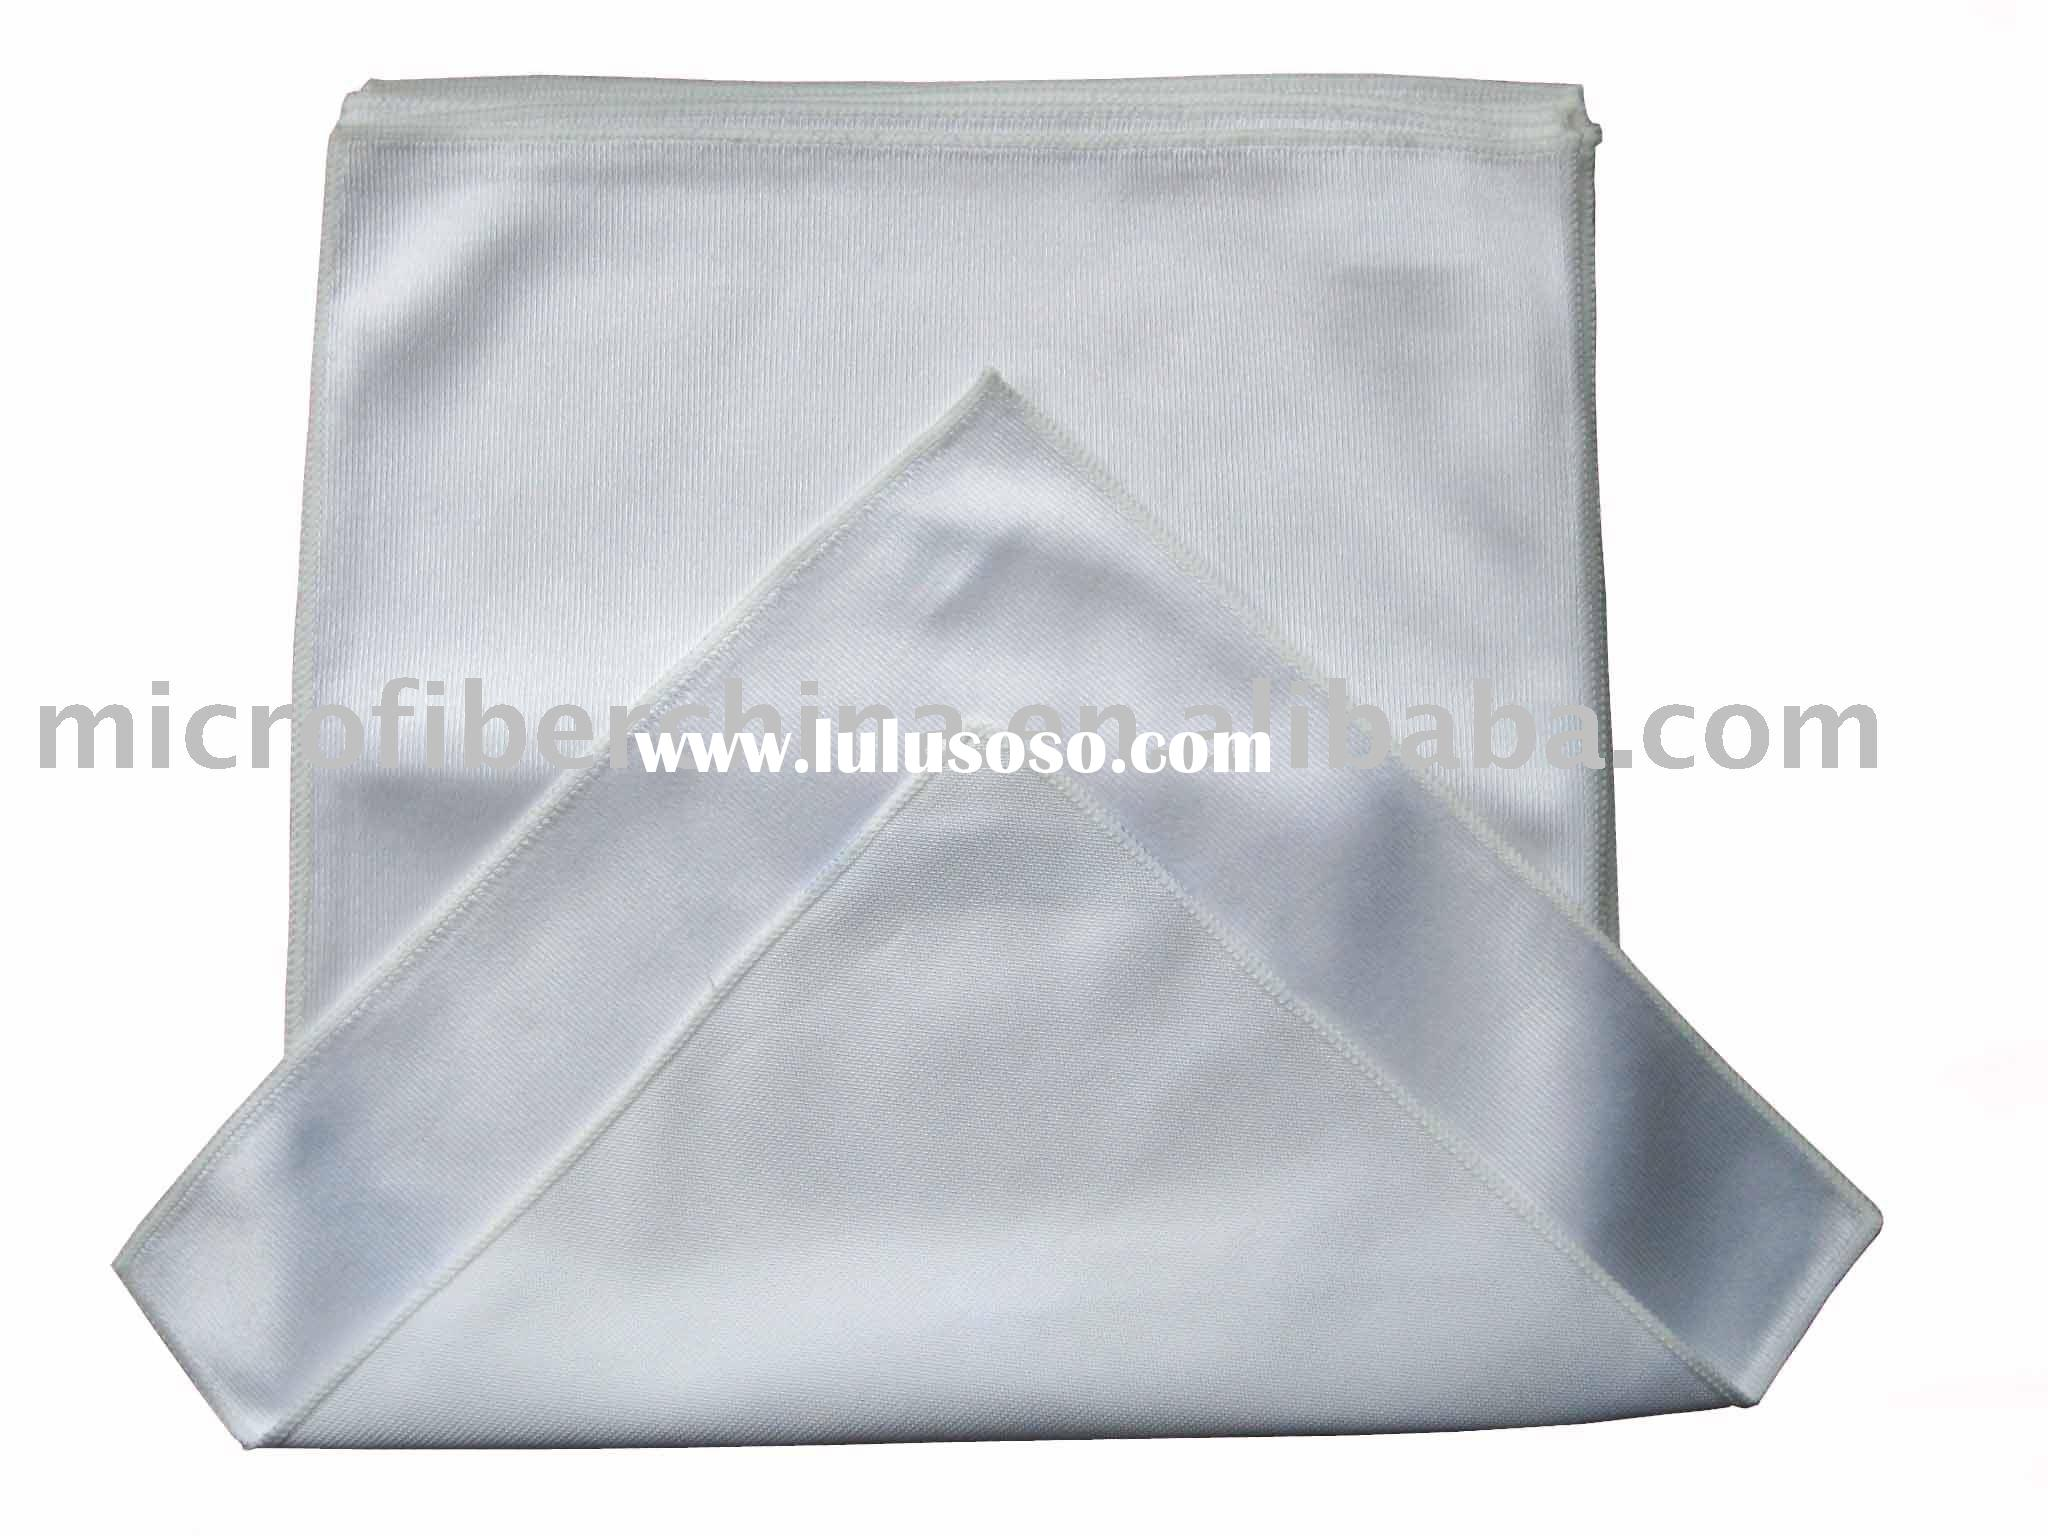 microfiber glass cleaning cloth ( for cleaning glass/ lens/ camera/ glasses )